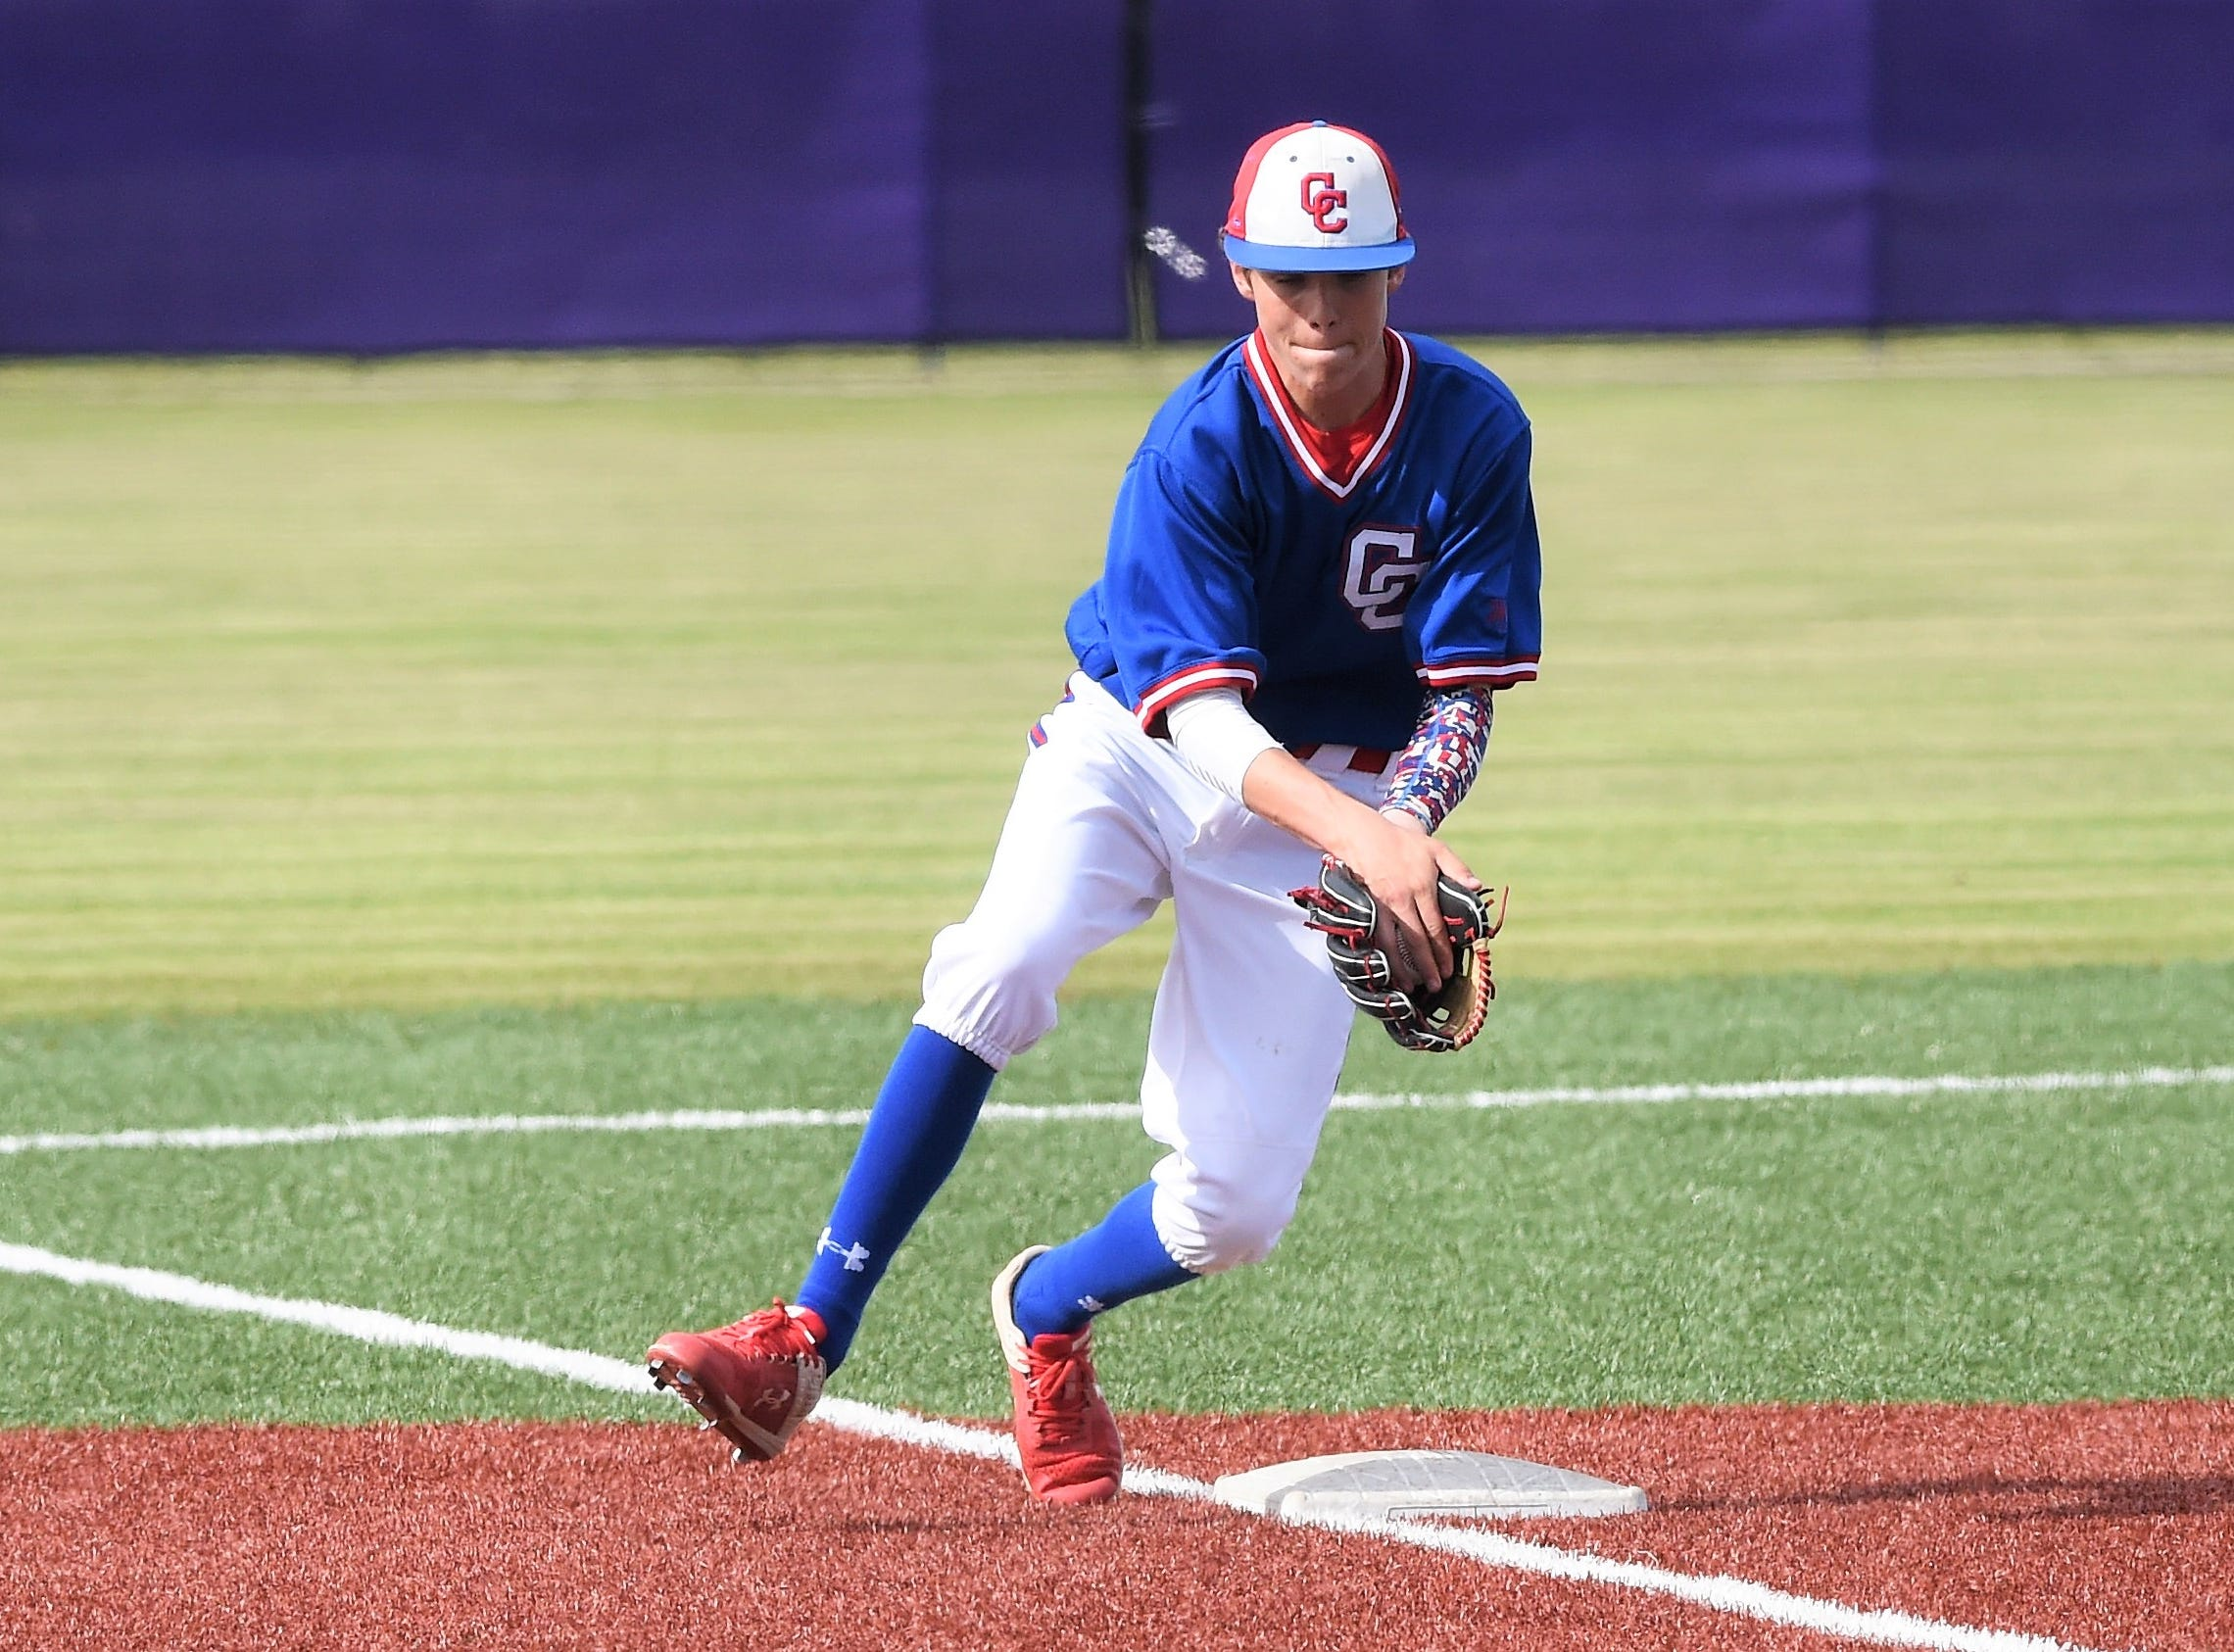 Cooper third baseman Jack Keefer (2) snags a grounder before getting the out at first against Wylie at Bulldog Field on Friday, April 12, 2019. Keefer had a hit, walked twice and scored in the 4-3 loss.